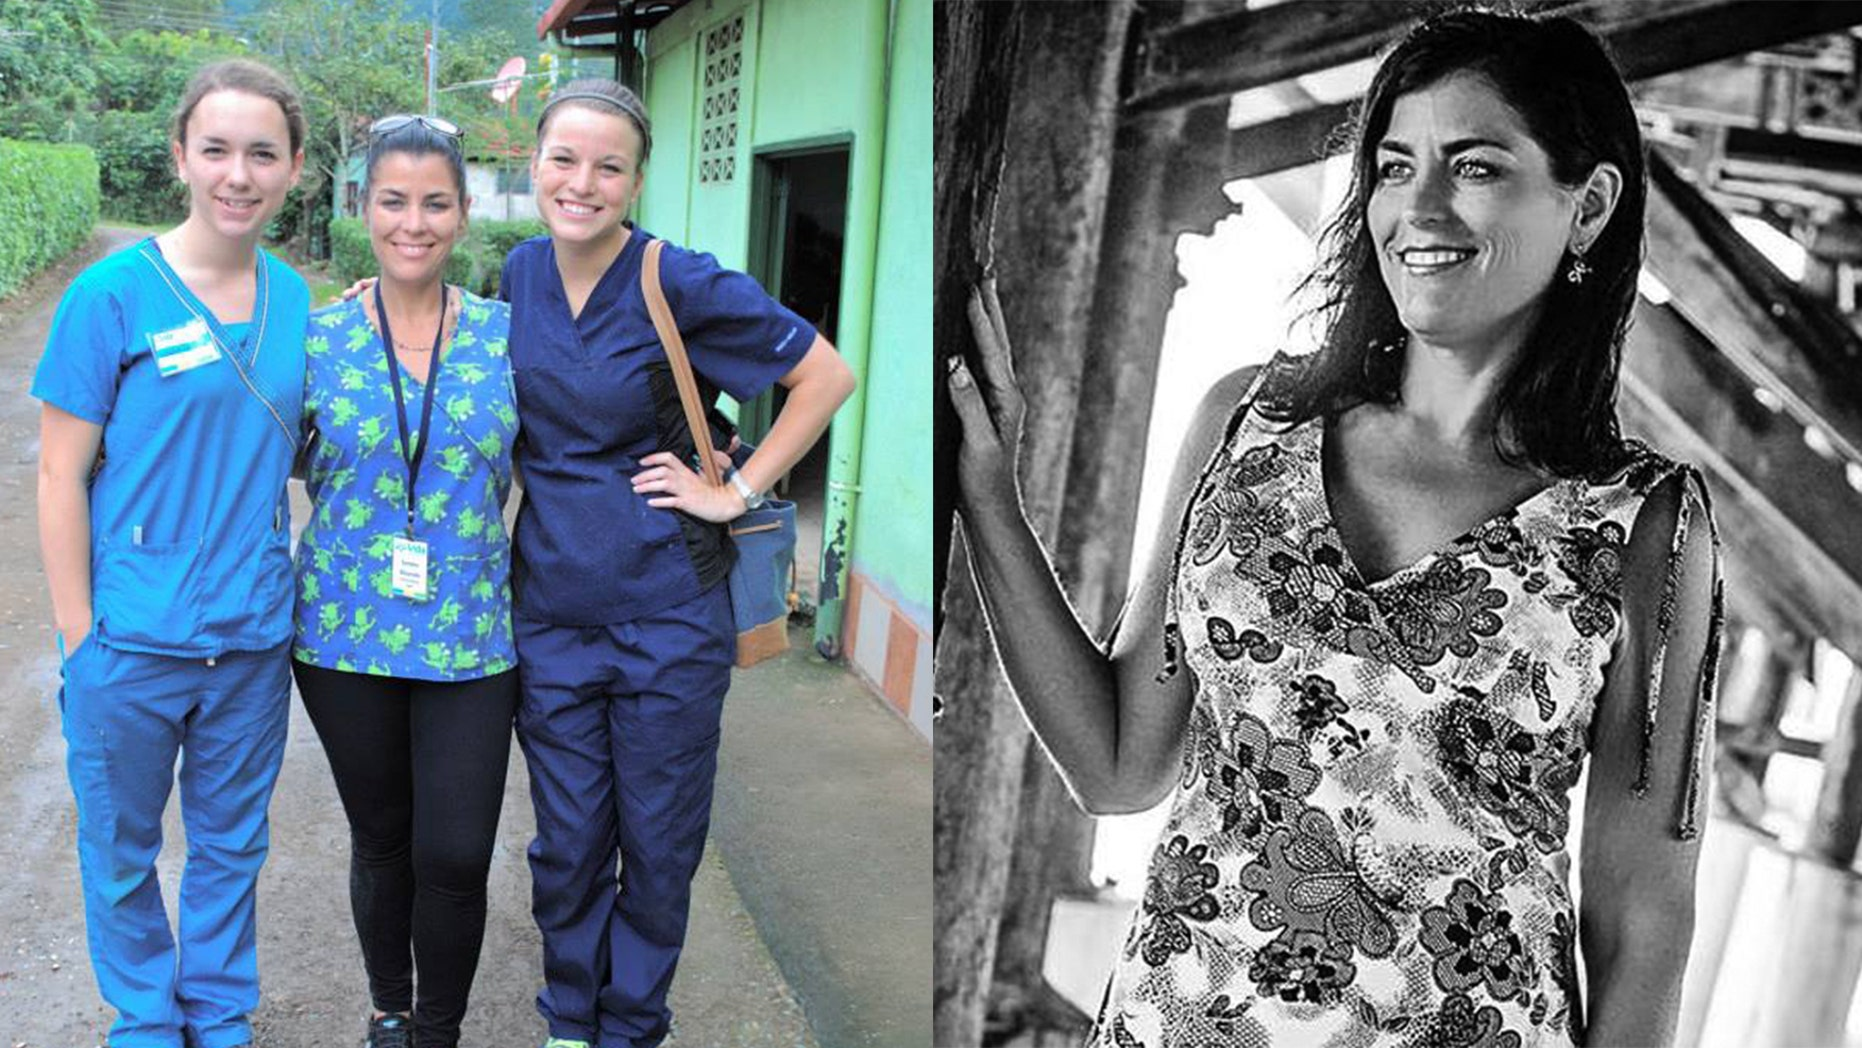 (LEFT) In this June, 2014 photo, U.S. citizen Sondra Lynn, center, poses with two unidentified fellow volunteers in Costa Rica. (RIGHT) In this Sept. 2015 photo, U.S. citizen Sondra Lynn poses for a photo in Florida. (Volunteer Travel via AP)